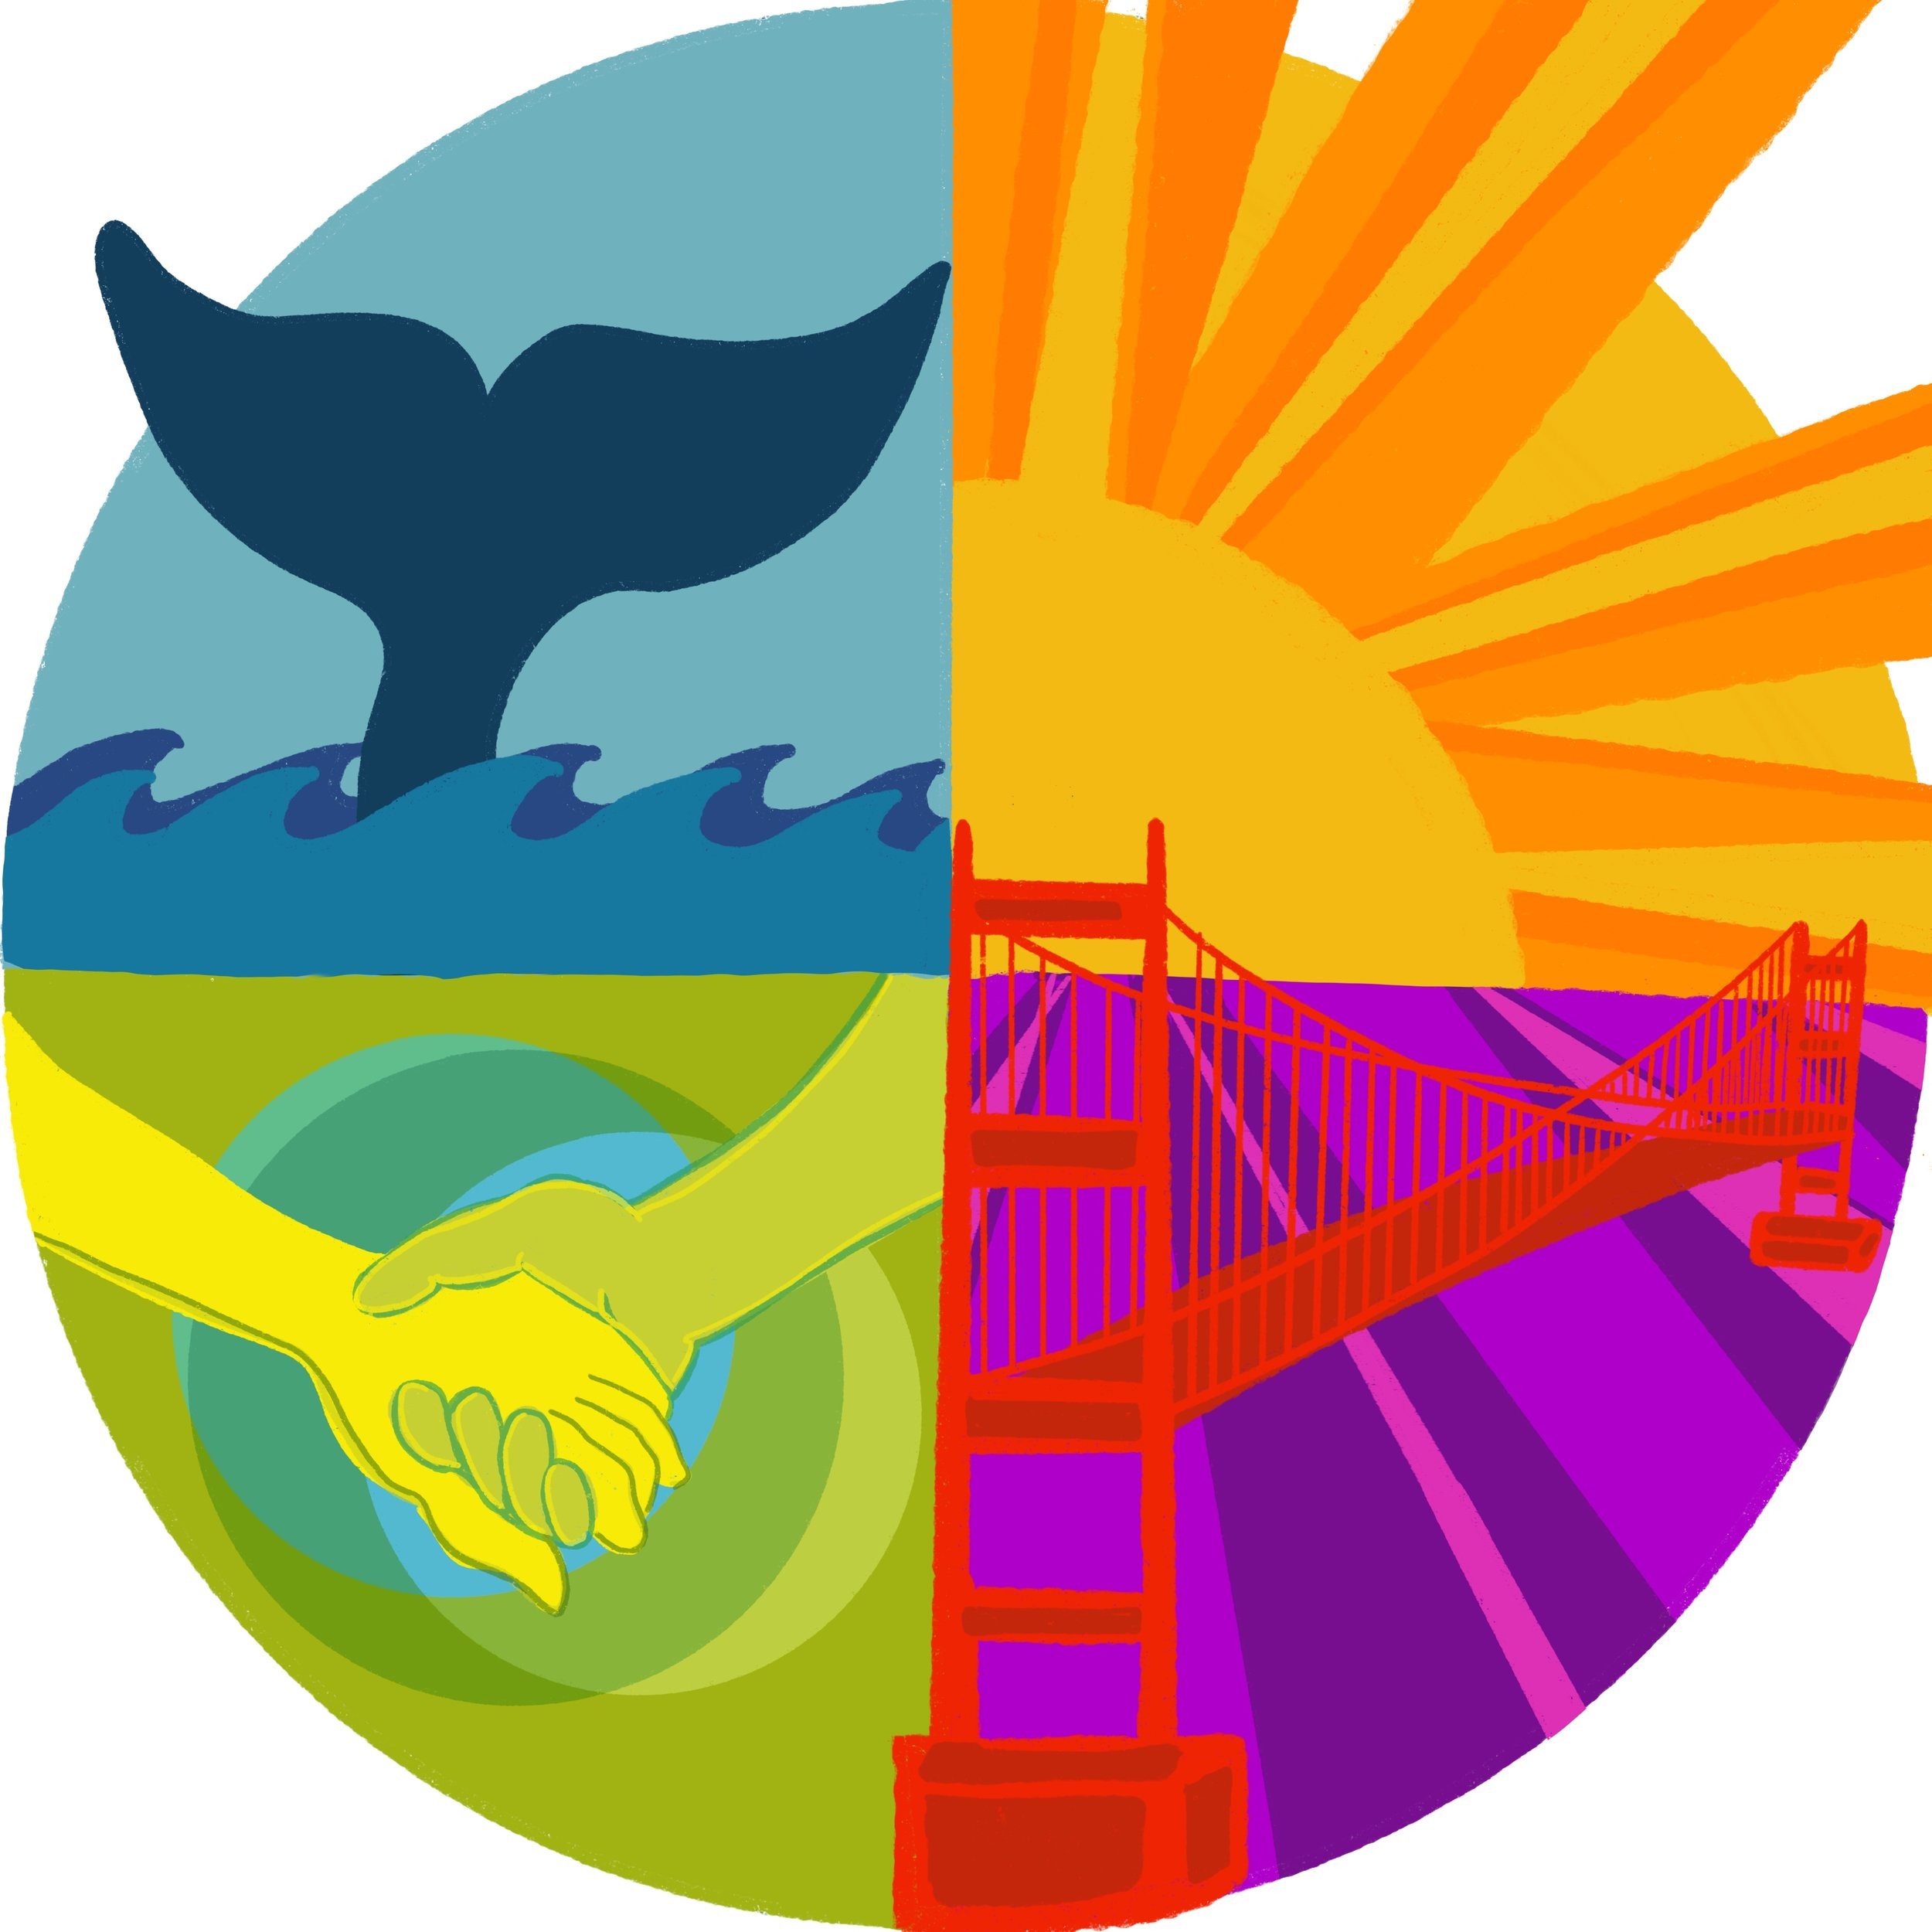 I opted to create a circular presentation to further the more symbiotic relationship these questions meant to me. I also chose to break the boundary of the circle as I see design as a way to break the rules or to upend the expected. Again, I chose illustration to convey the individual question's symbology: whale (who), sun (what), San Francisco (where), and community (why).  What do you think?